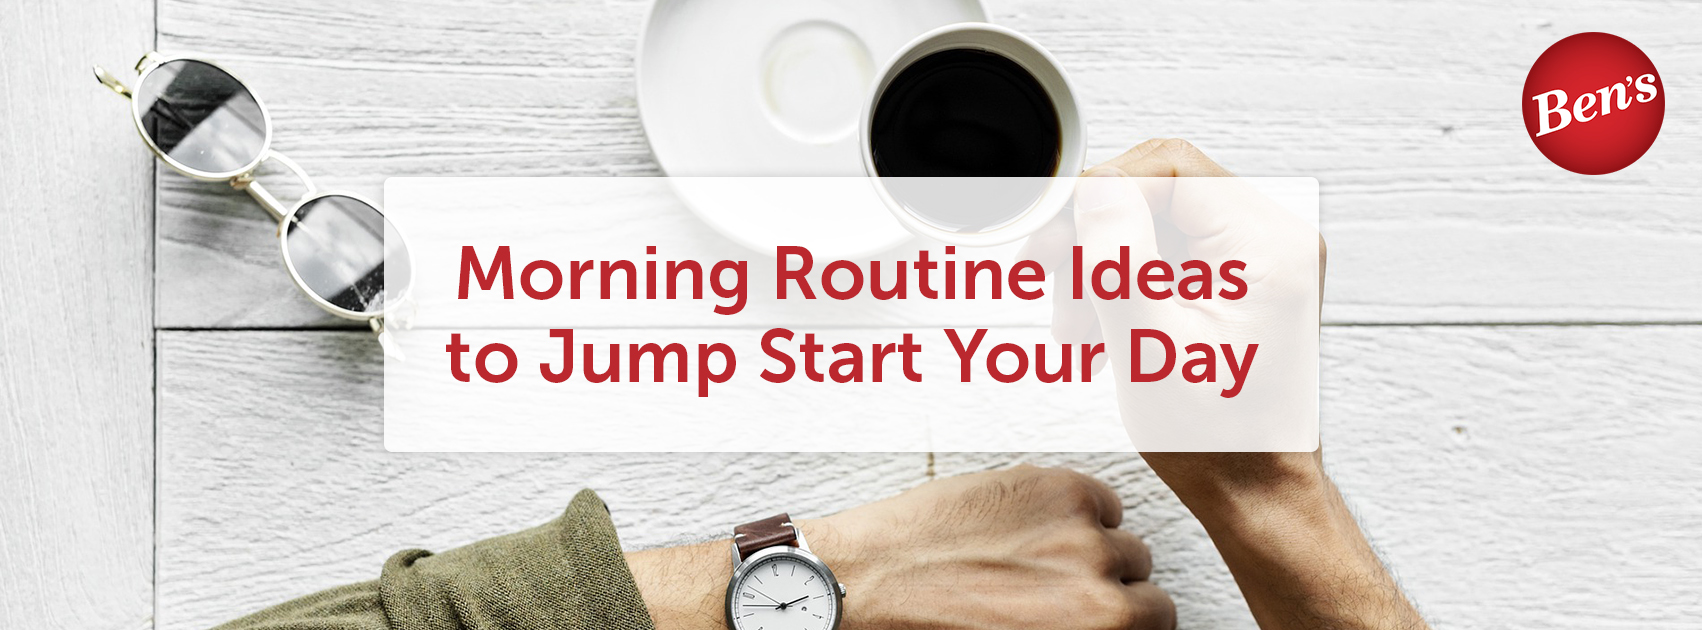 Morning Routine Ideas to Jump Start Your Day